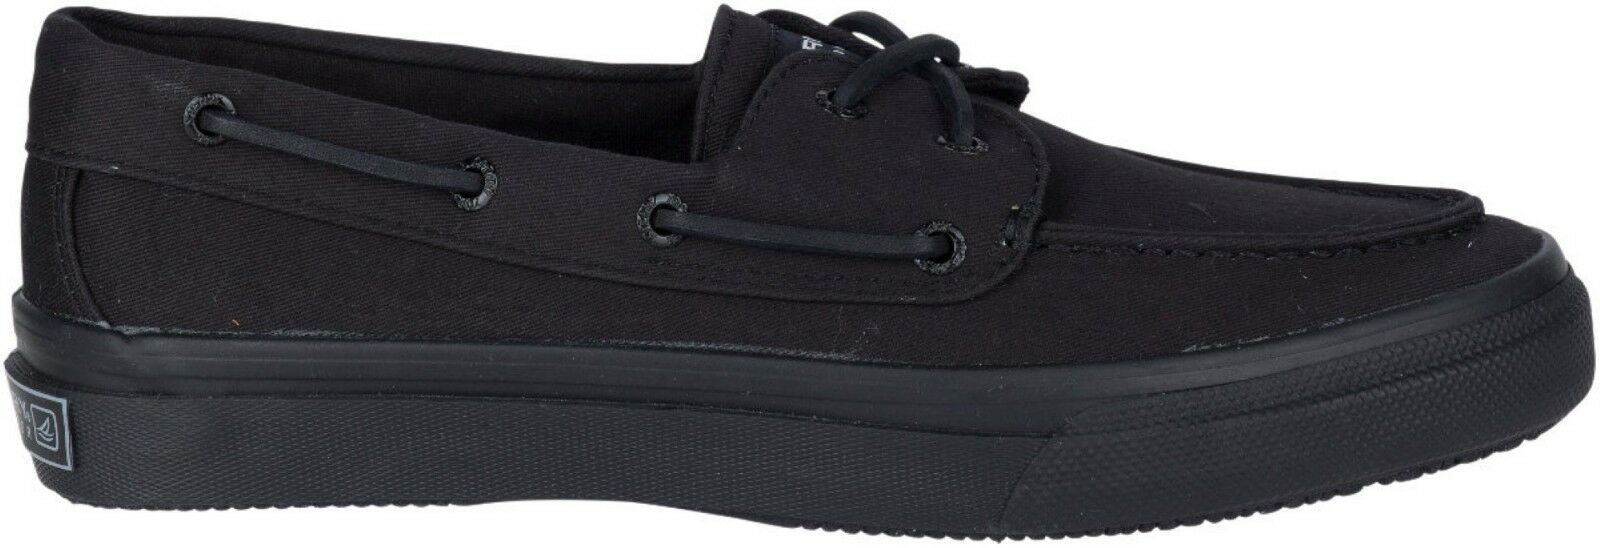 Sperry Top Sider Men's Boat shoes Bahama 2-Eye Boat shoes